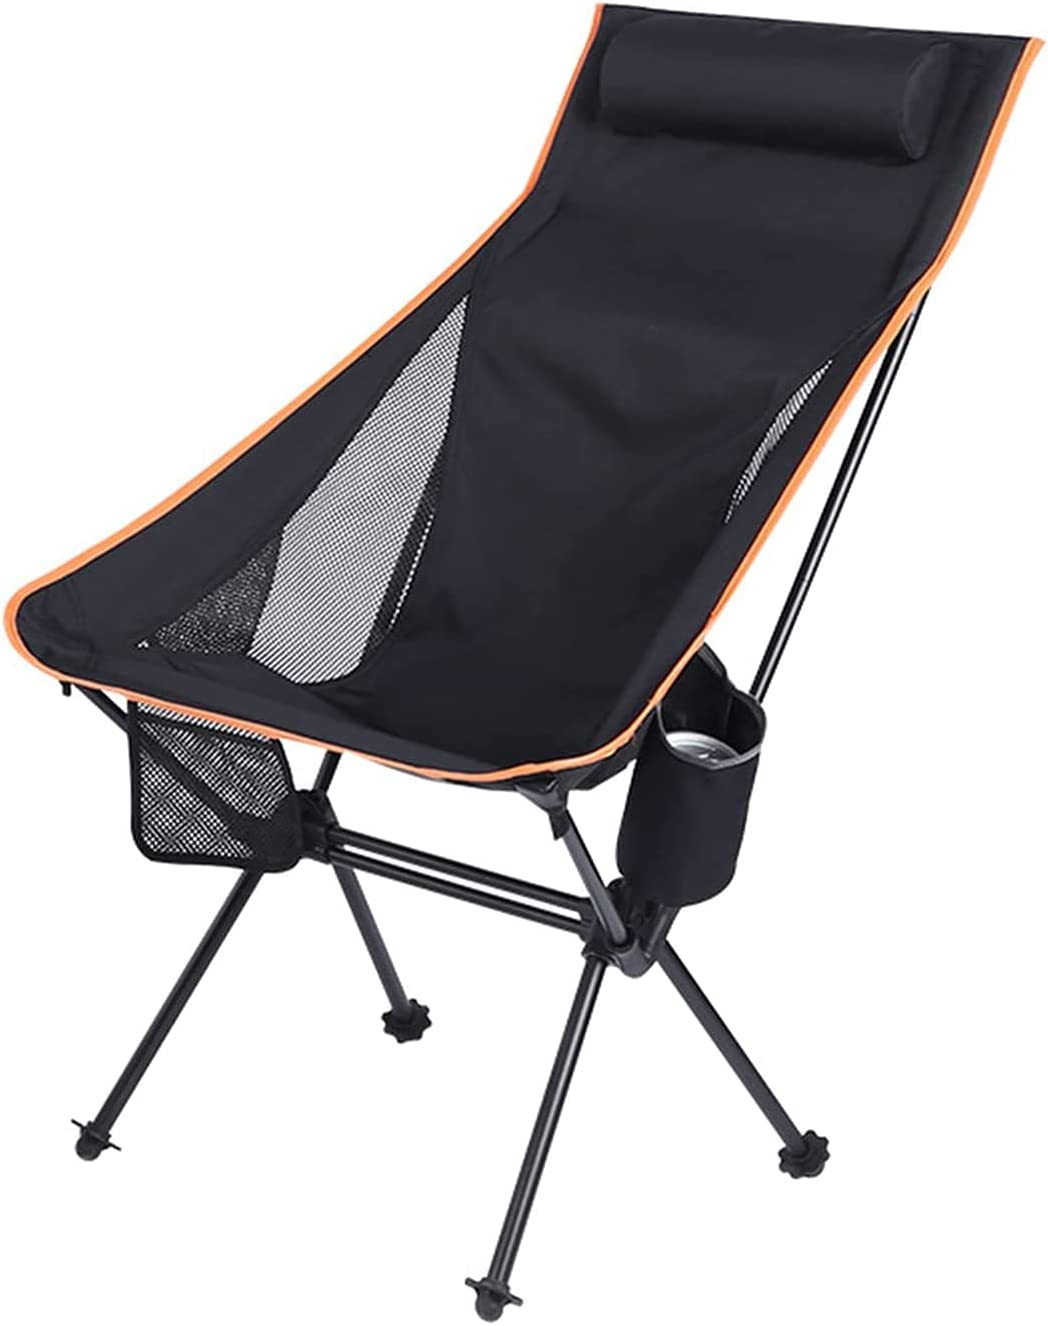 JYMBK Camping Folding Lawn Translated Chair Portable Limited time sale